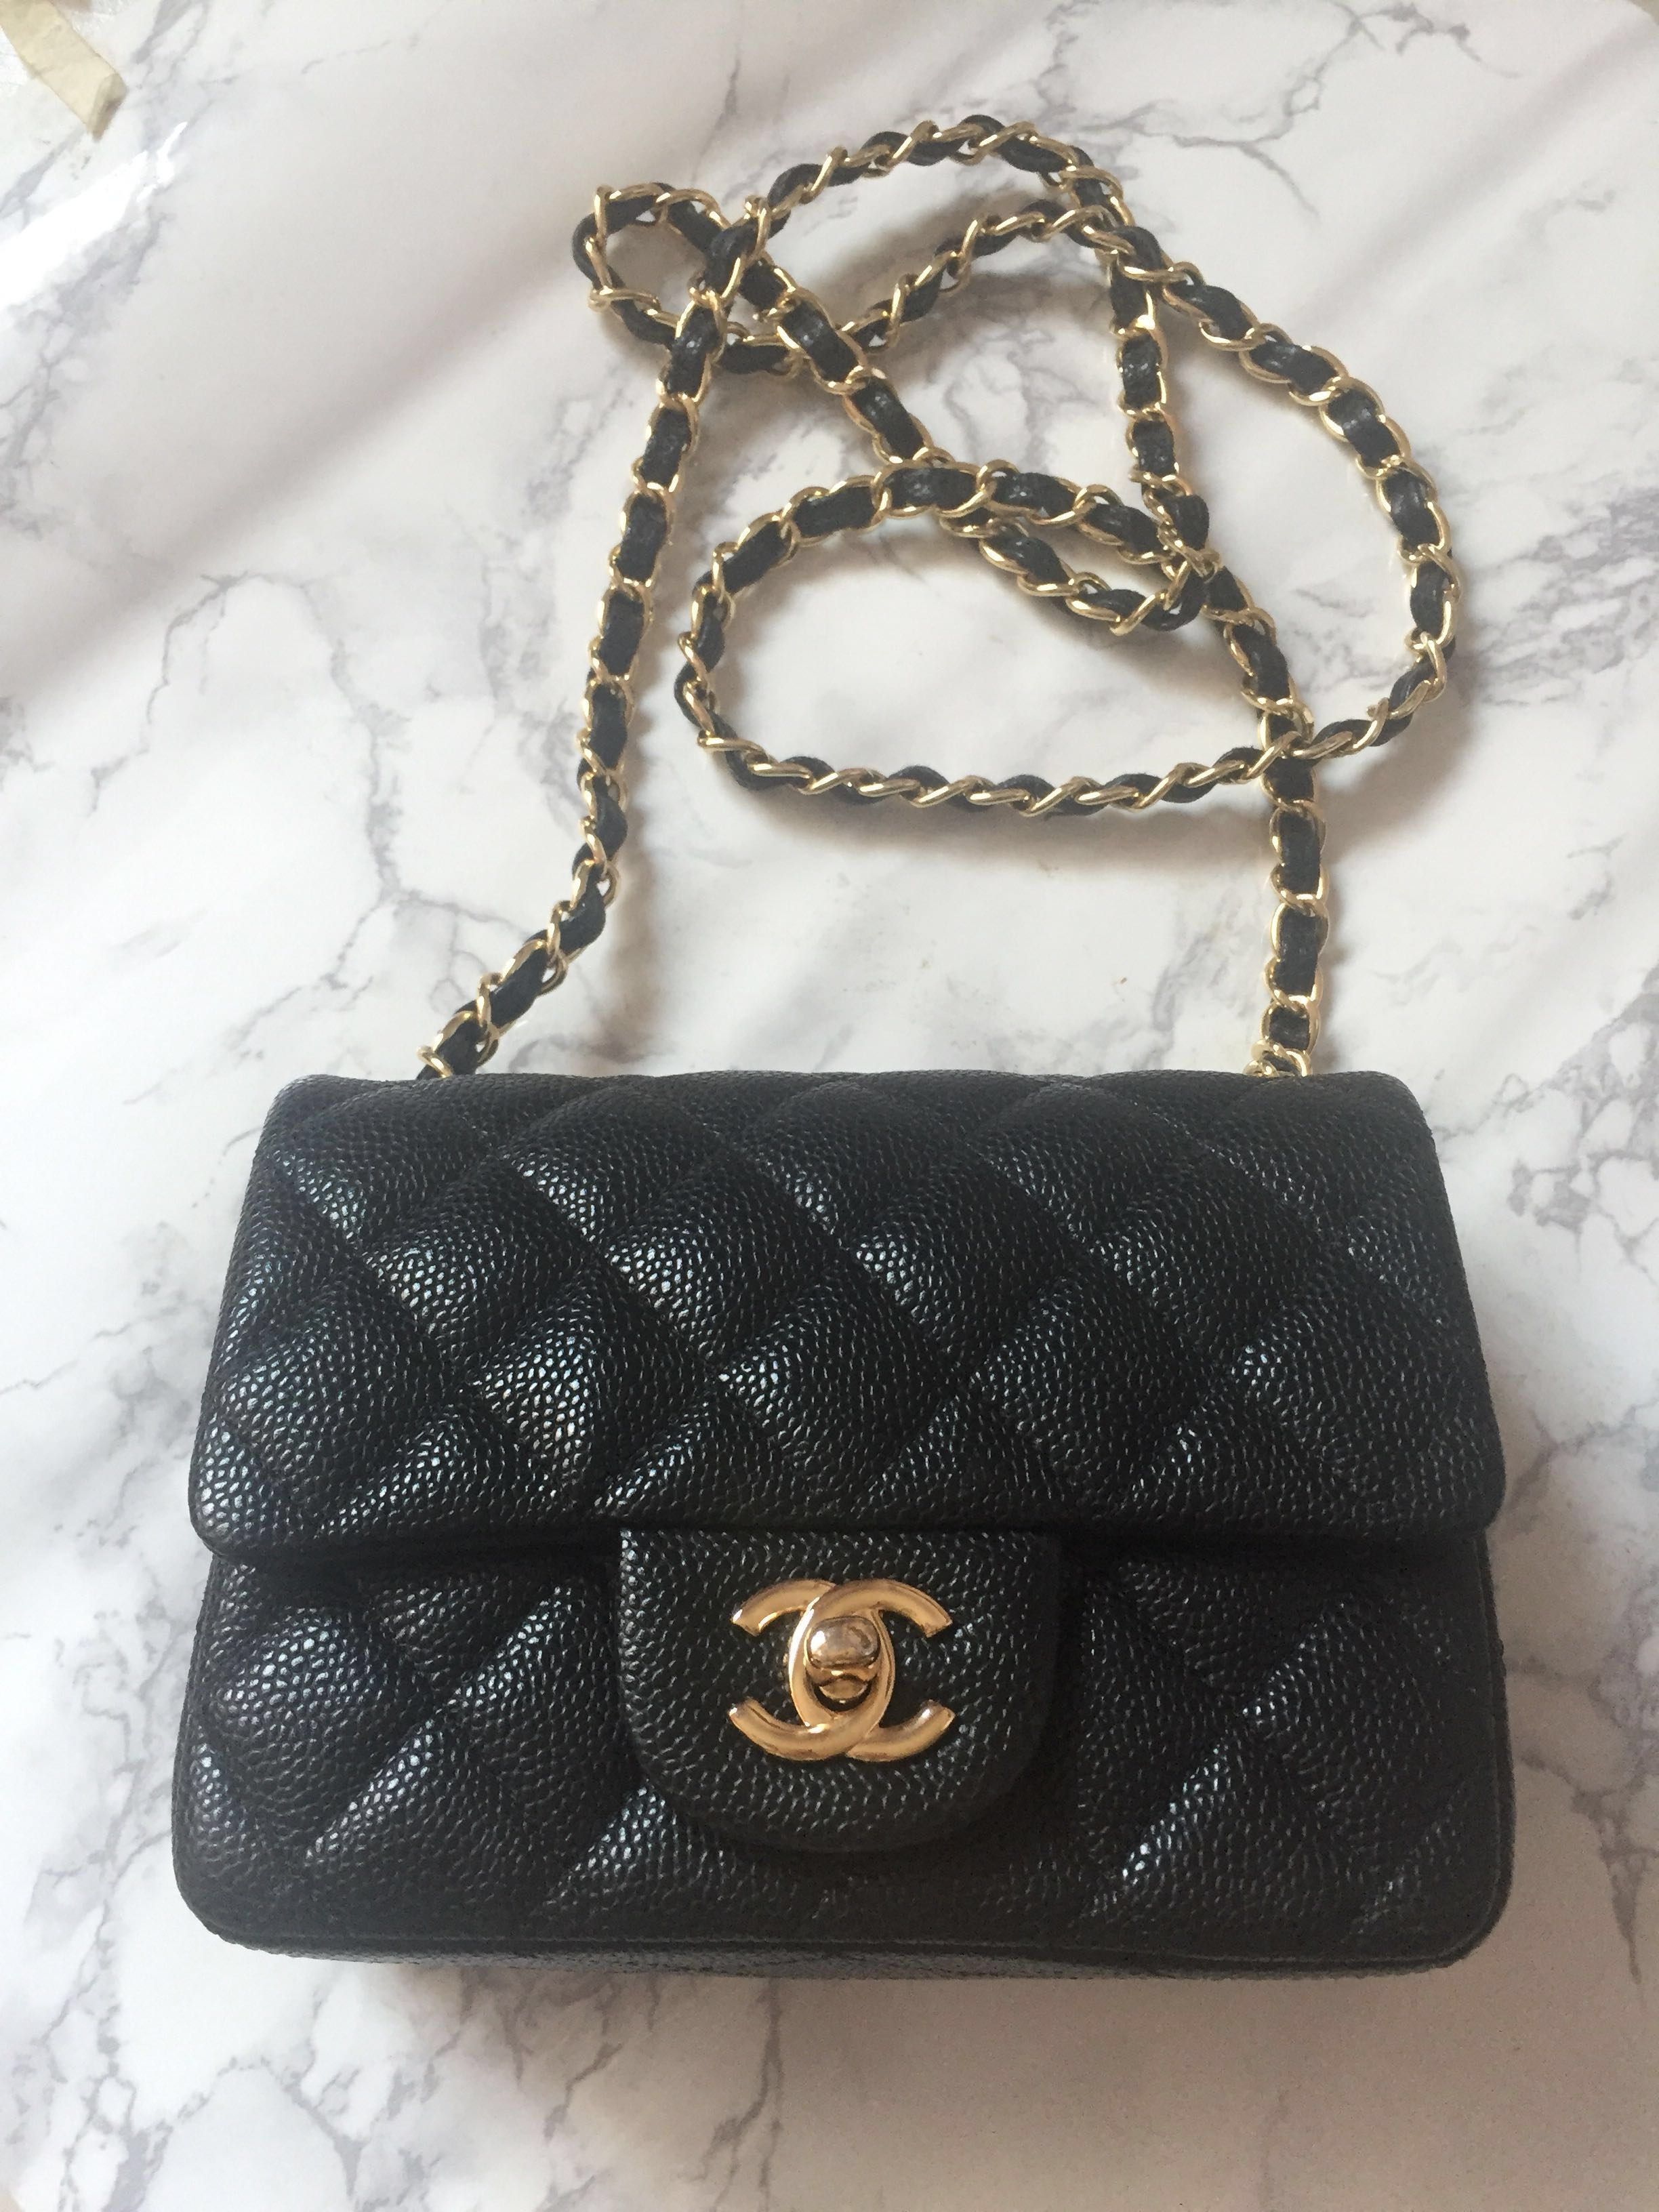 d43882d97cc197 (Item not available) Chanel Mini Square Classic Flap Bag, Luxury, Bags &  Wallets, Sling Bags on Carousell